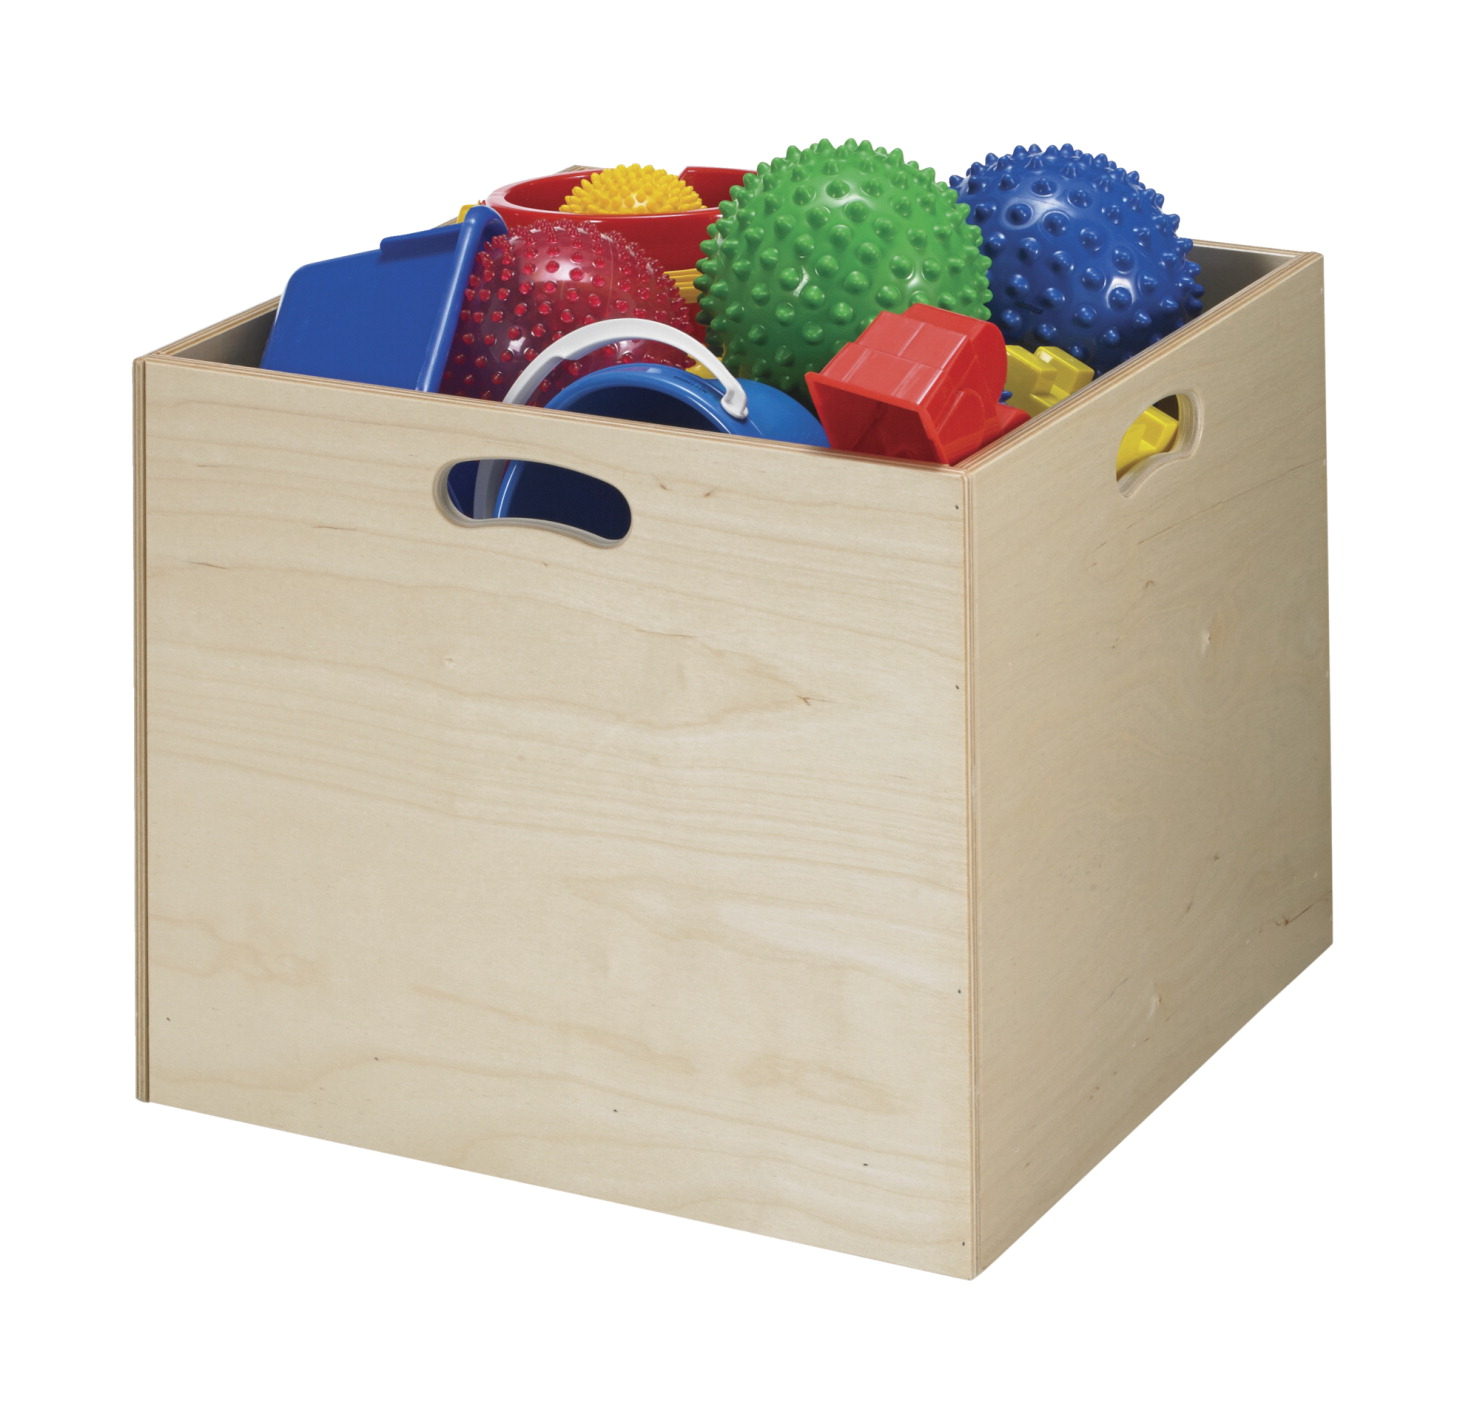 Childcraft Wooden Storage Bin, 19-7/8 x 19-7/8 x 17-5/16 Inches